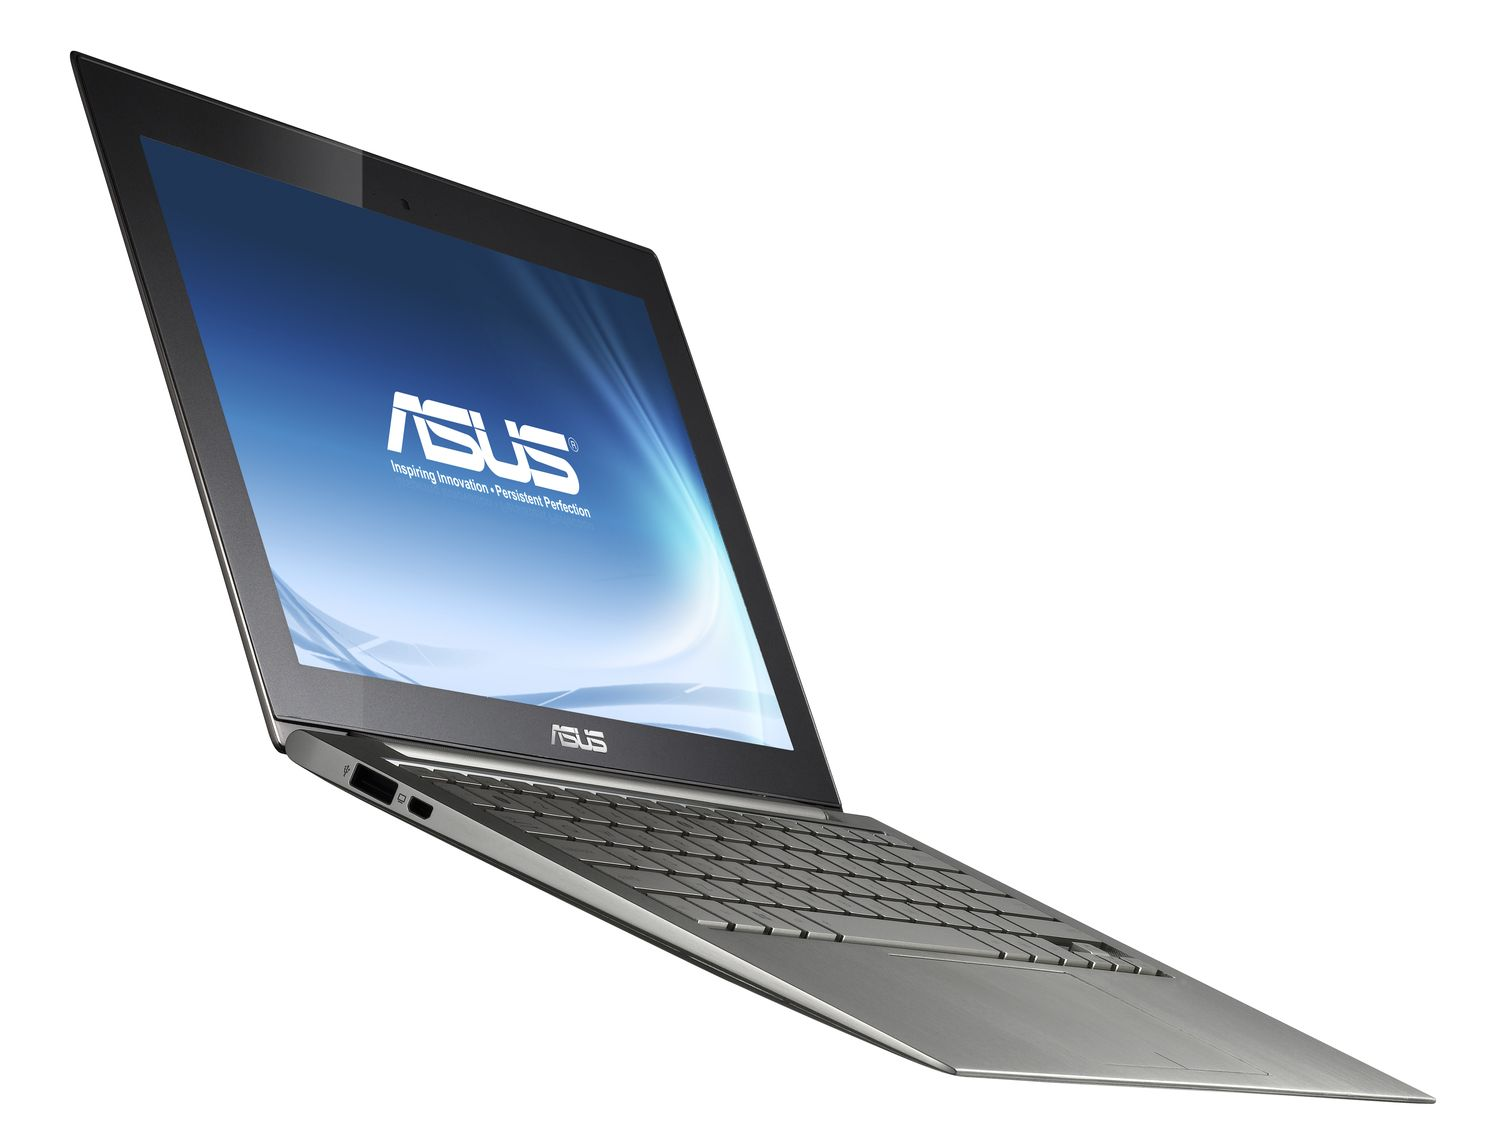 ASUS ZENBOOK UX21E INTEL RAPID STORAGE DRIVERS DOWNLOAD